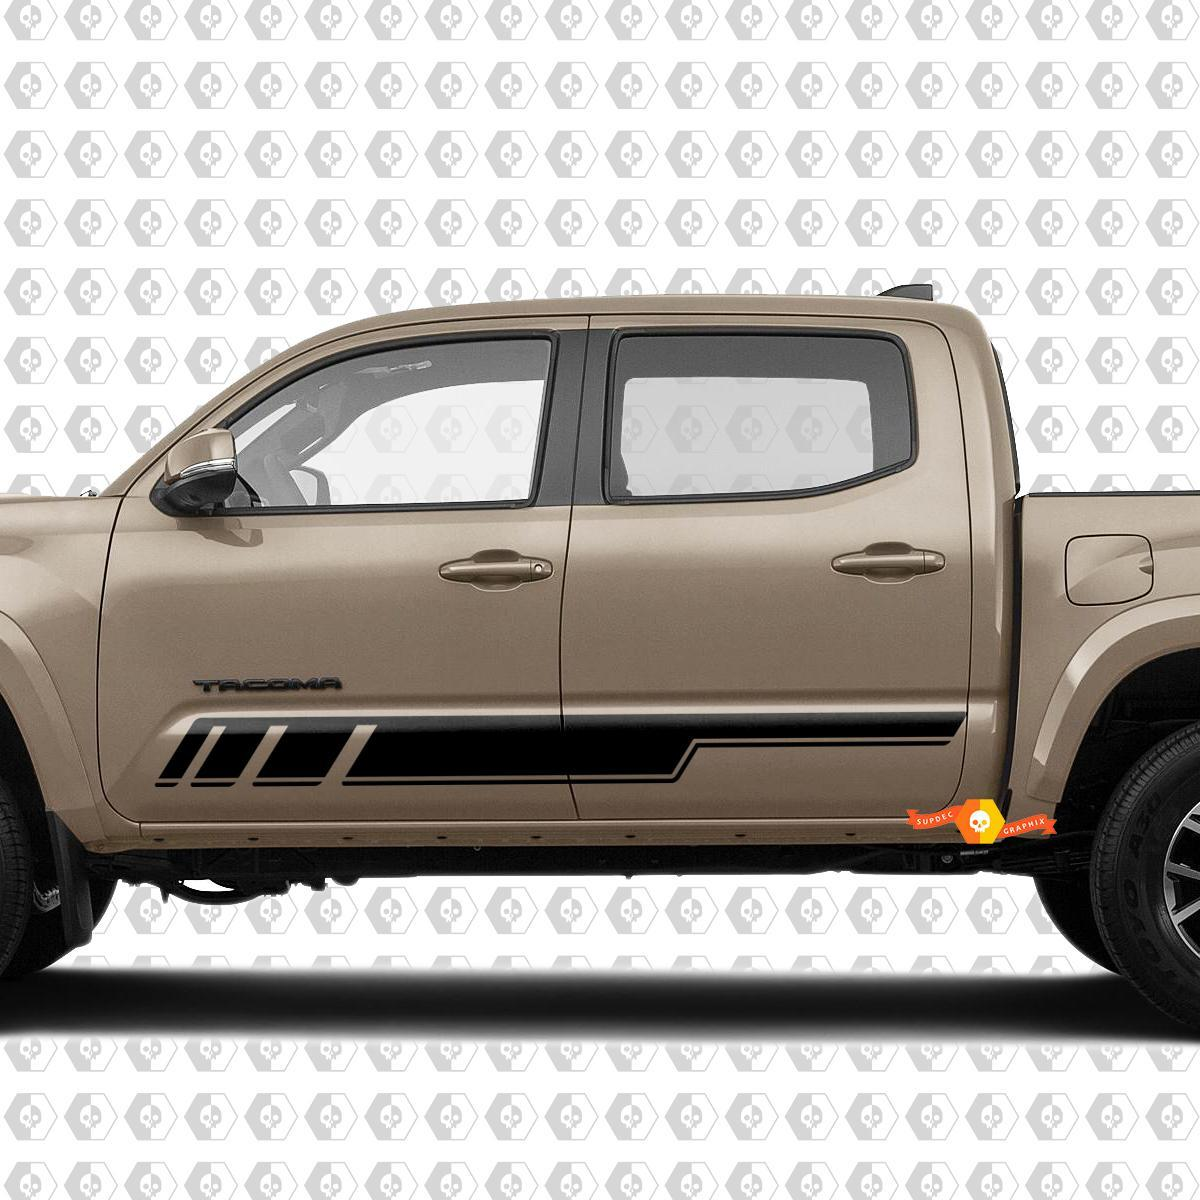 2x Stripes for Tacoma Side Rocker Panel Vinyl Stickers Decal fit to Toyota Tacoma TRD Off Road Pro Sport